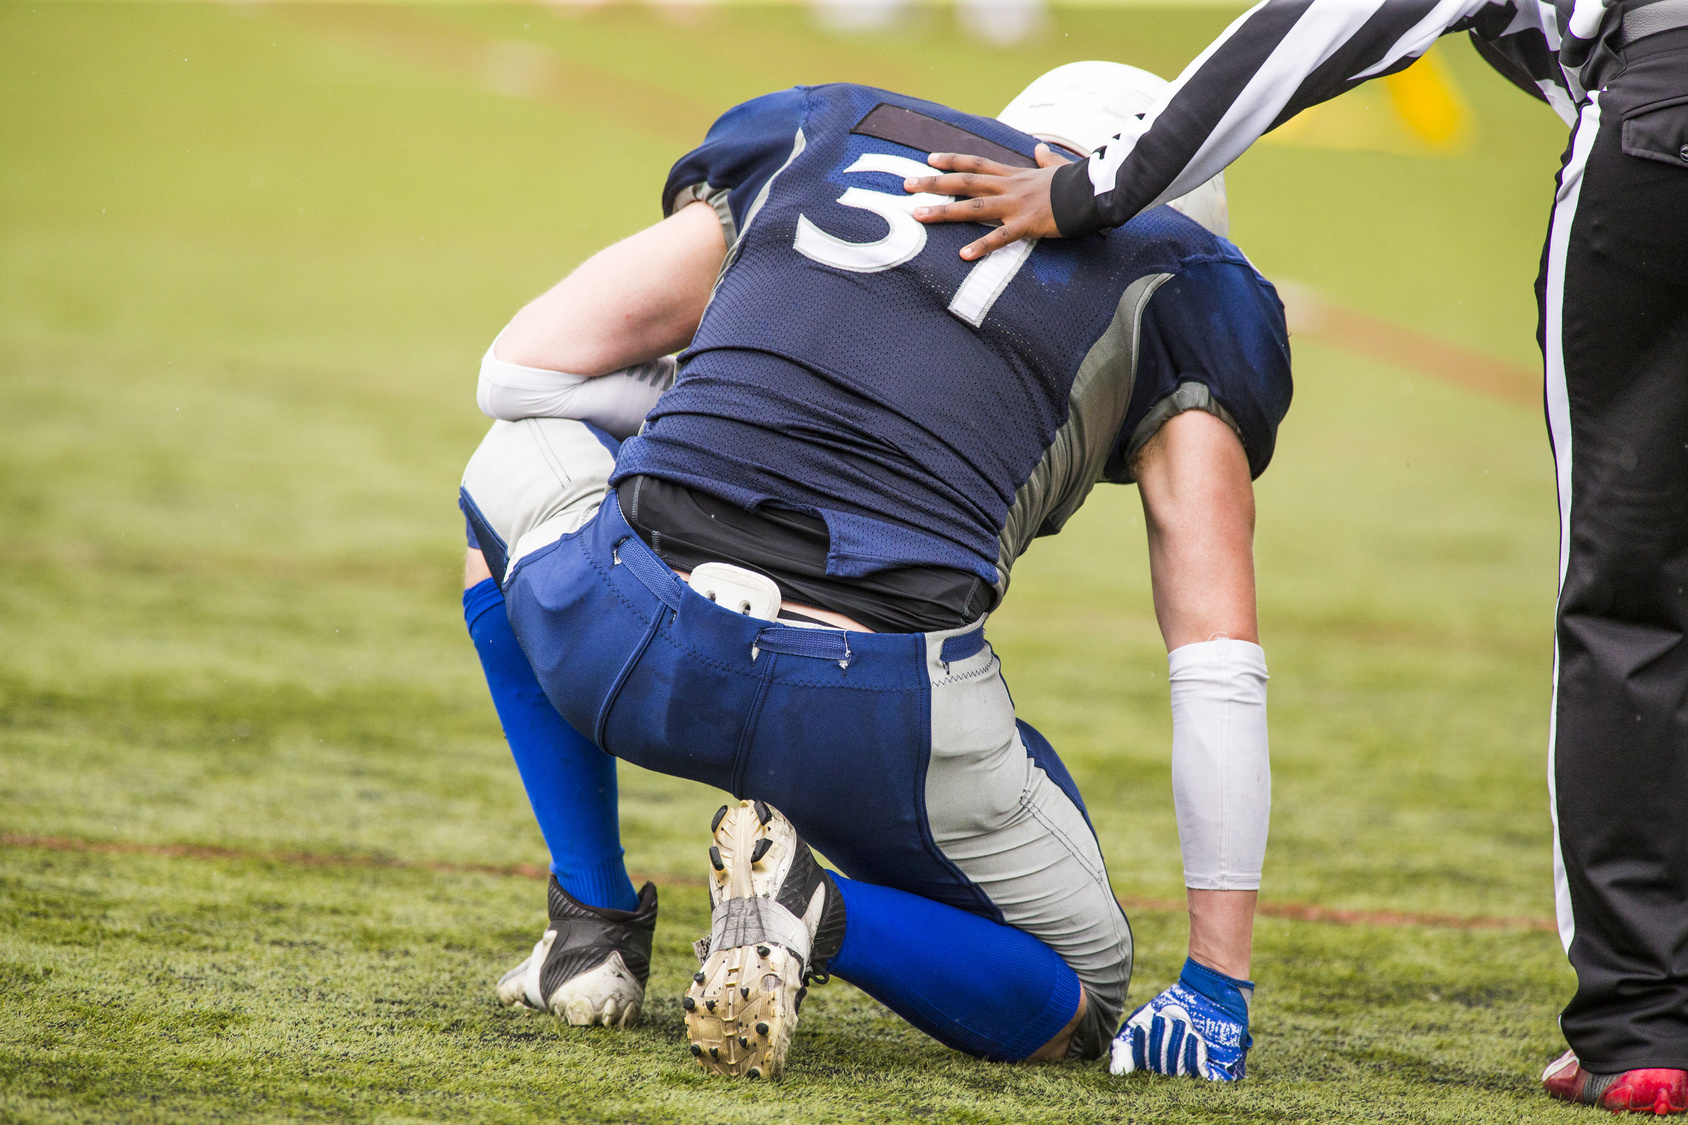 Football playing suffering from testicular pain | Urology Associates | Denver